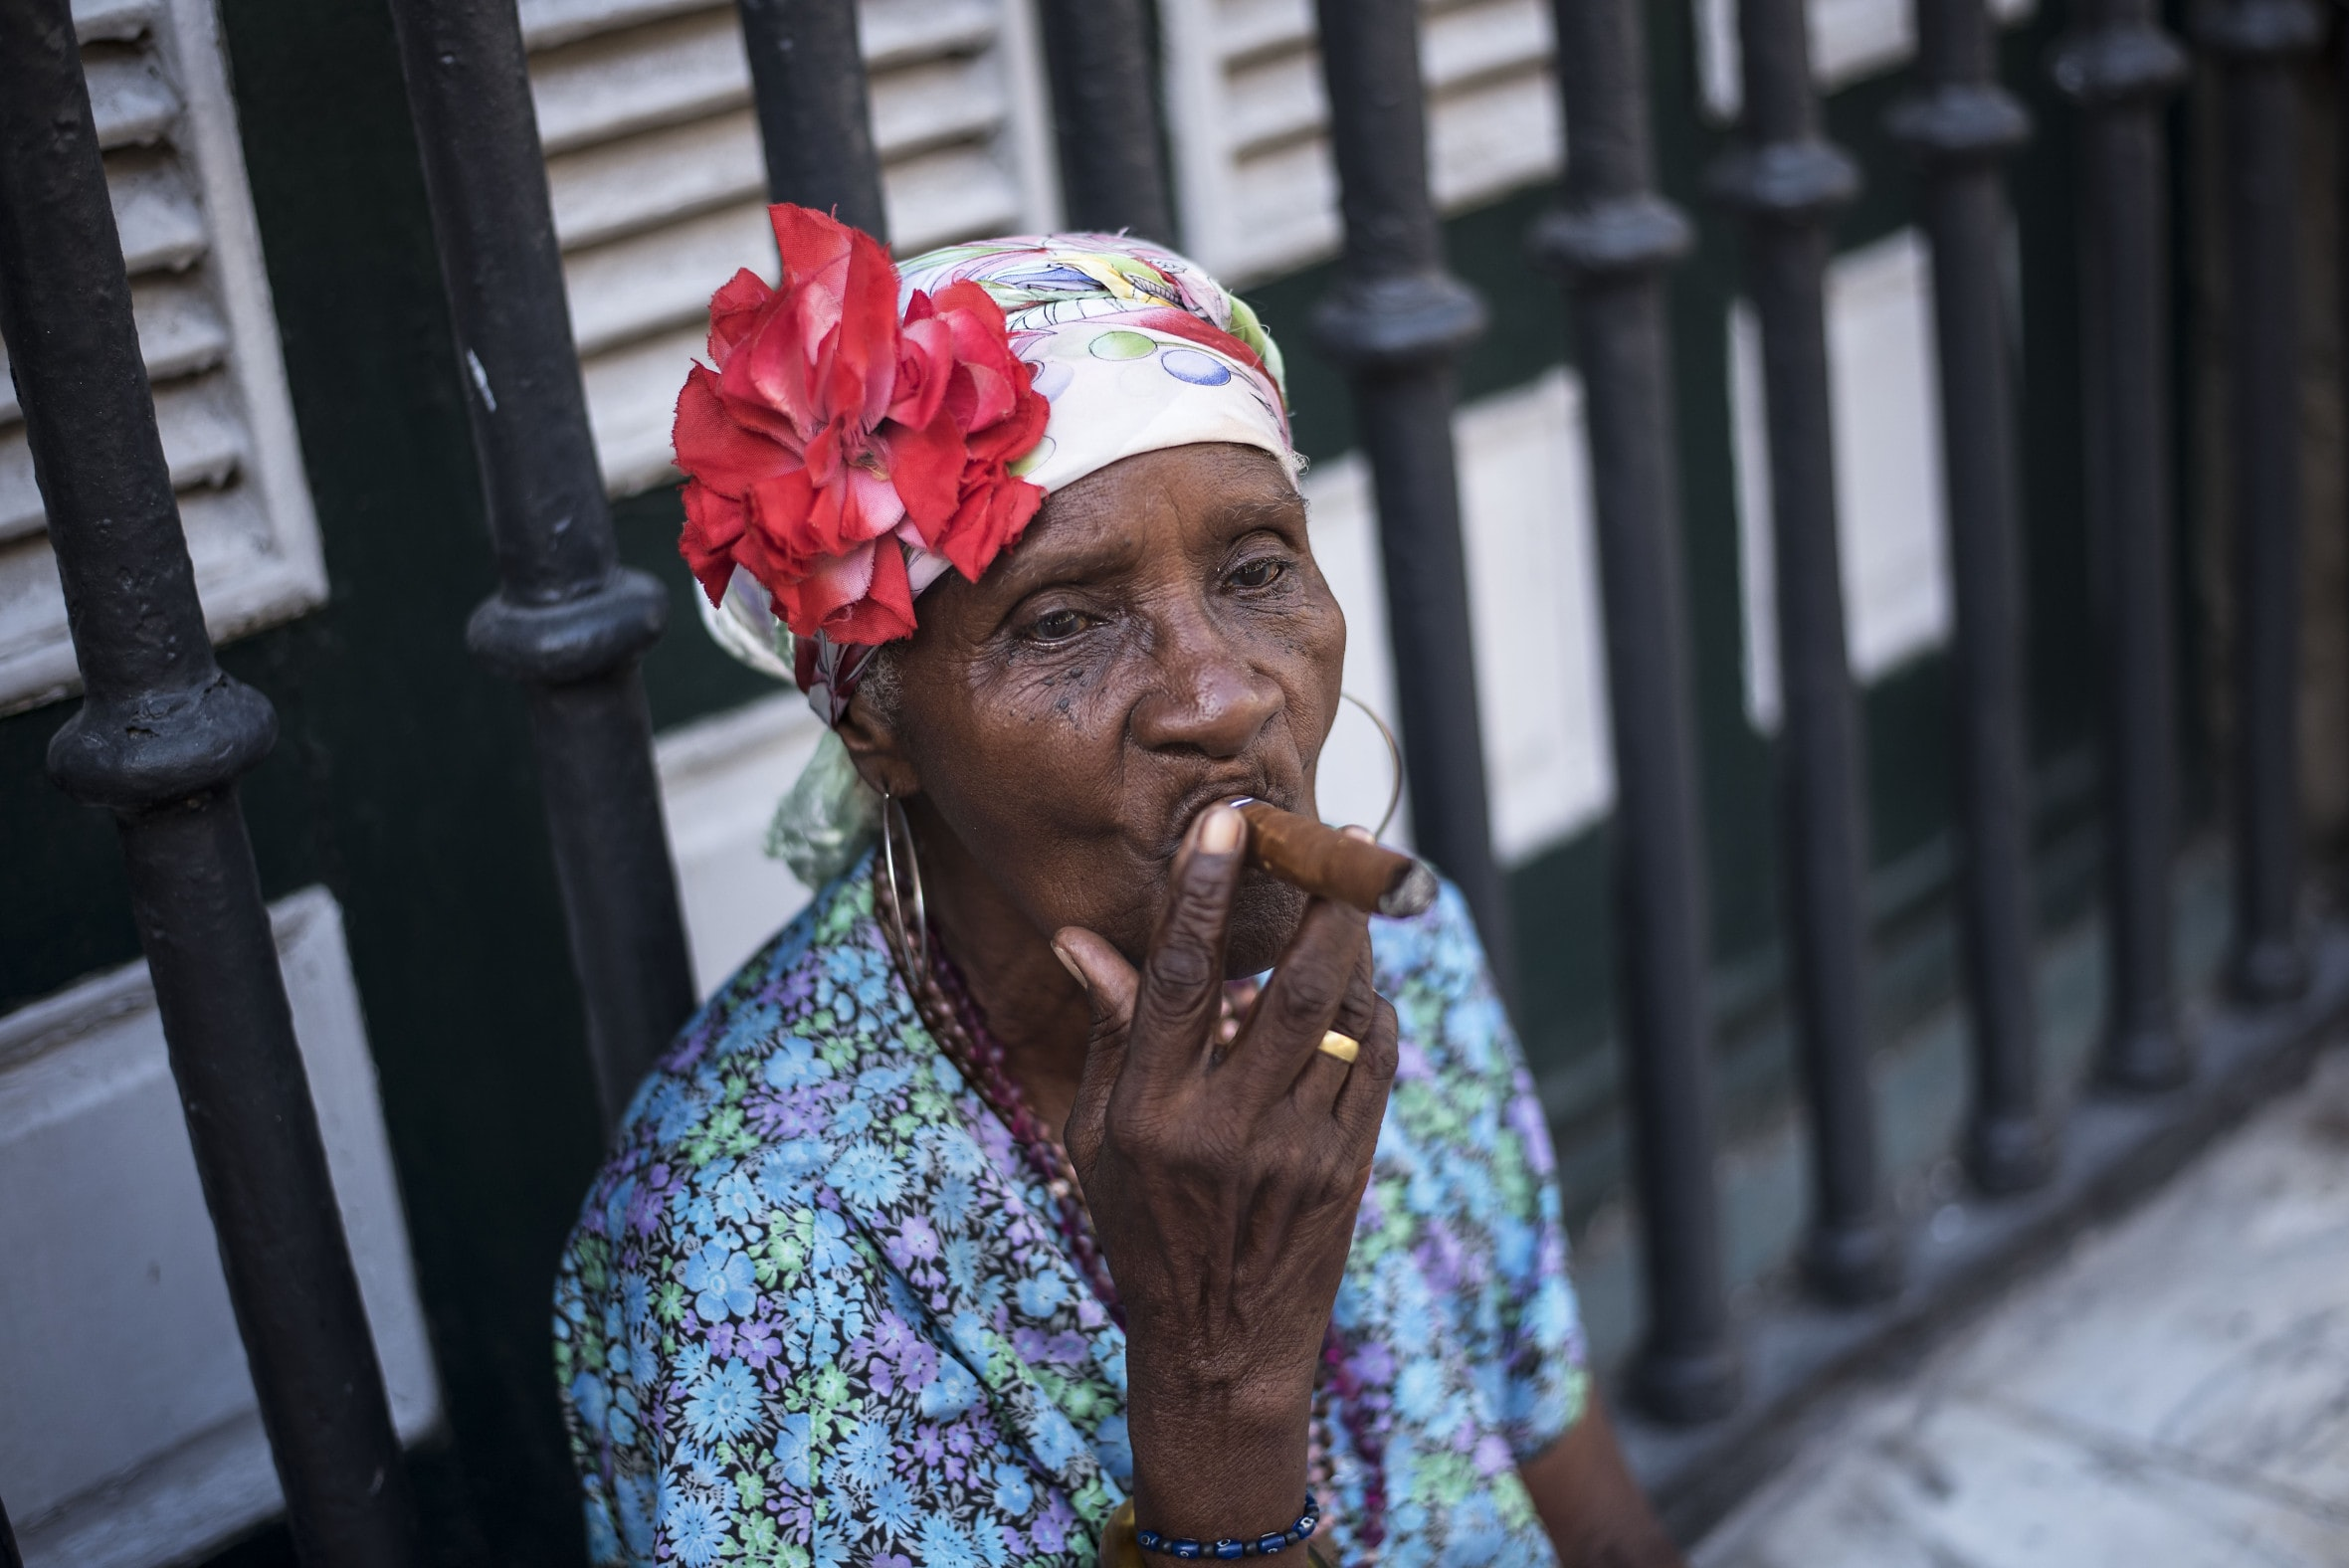 A woman wearing a headscarf with a flower, smoking a cigar